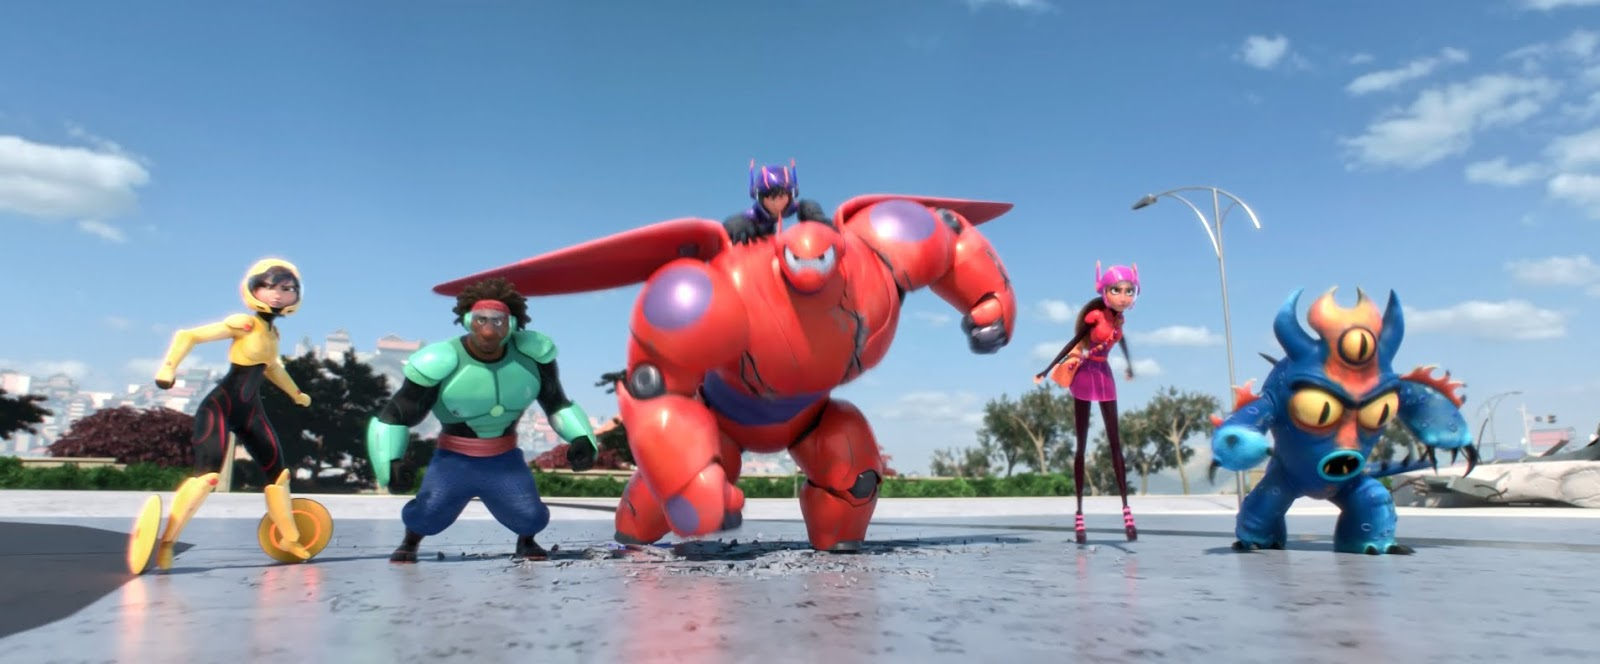 Disney XD Unveils Big Hero 6: The Series opening Scene